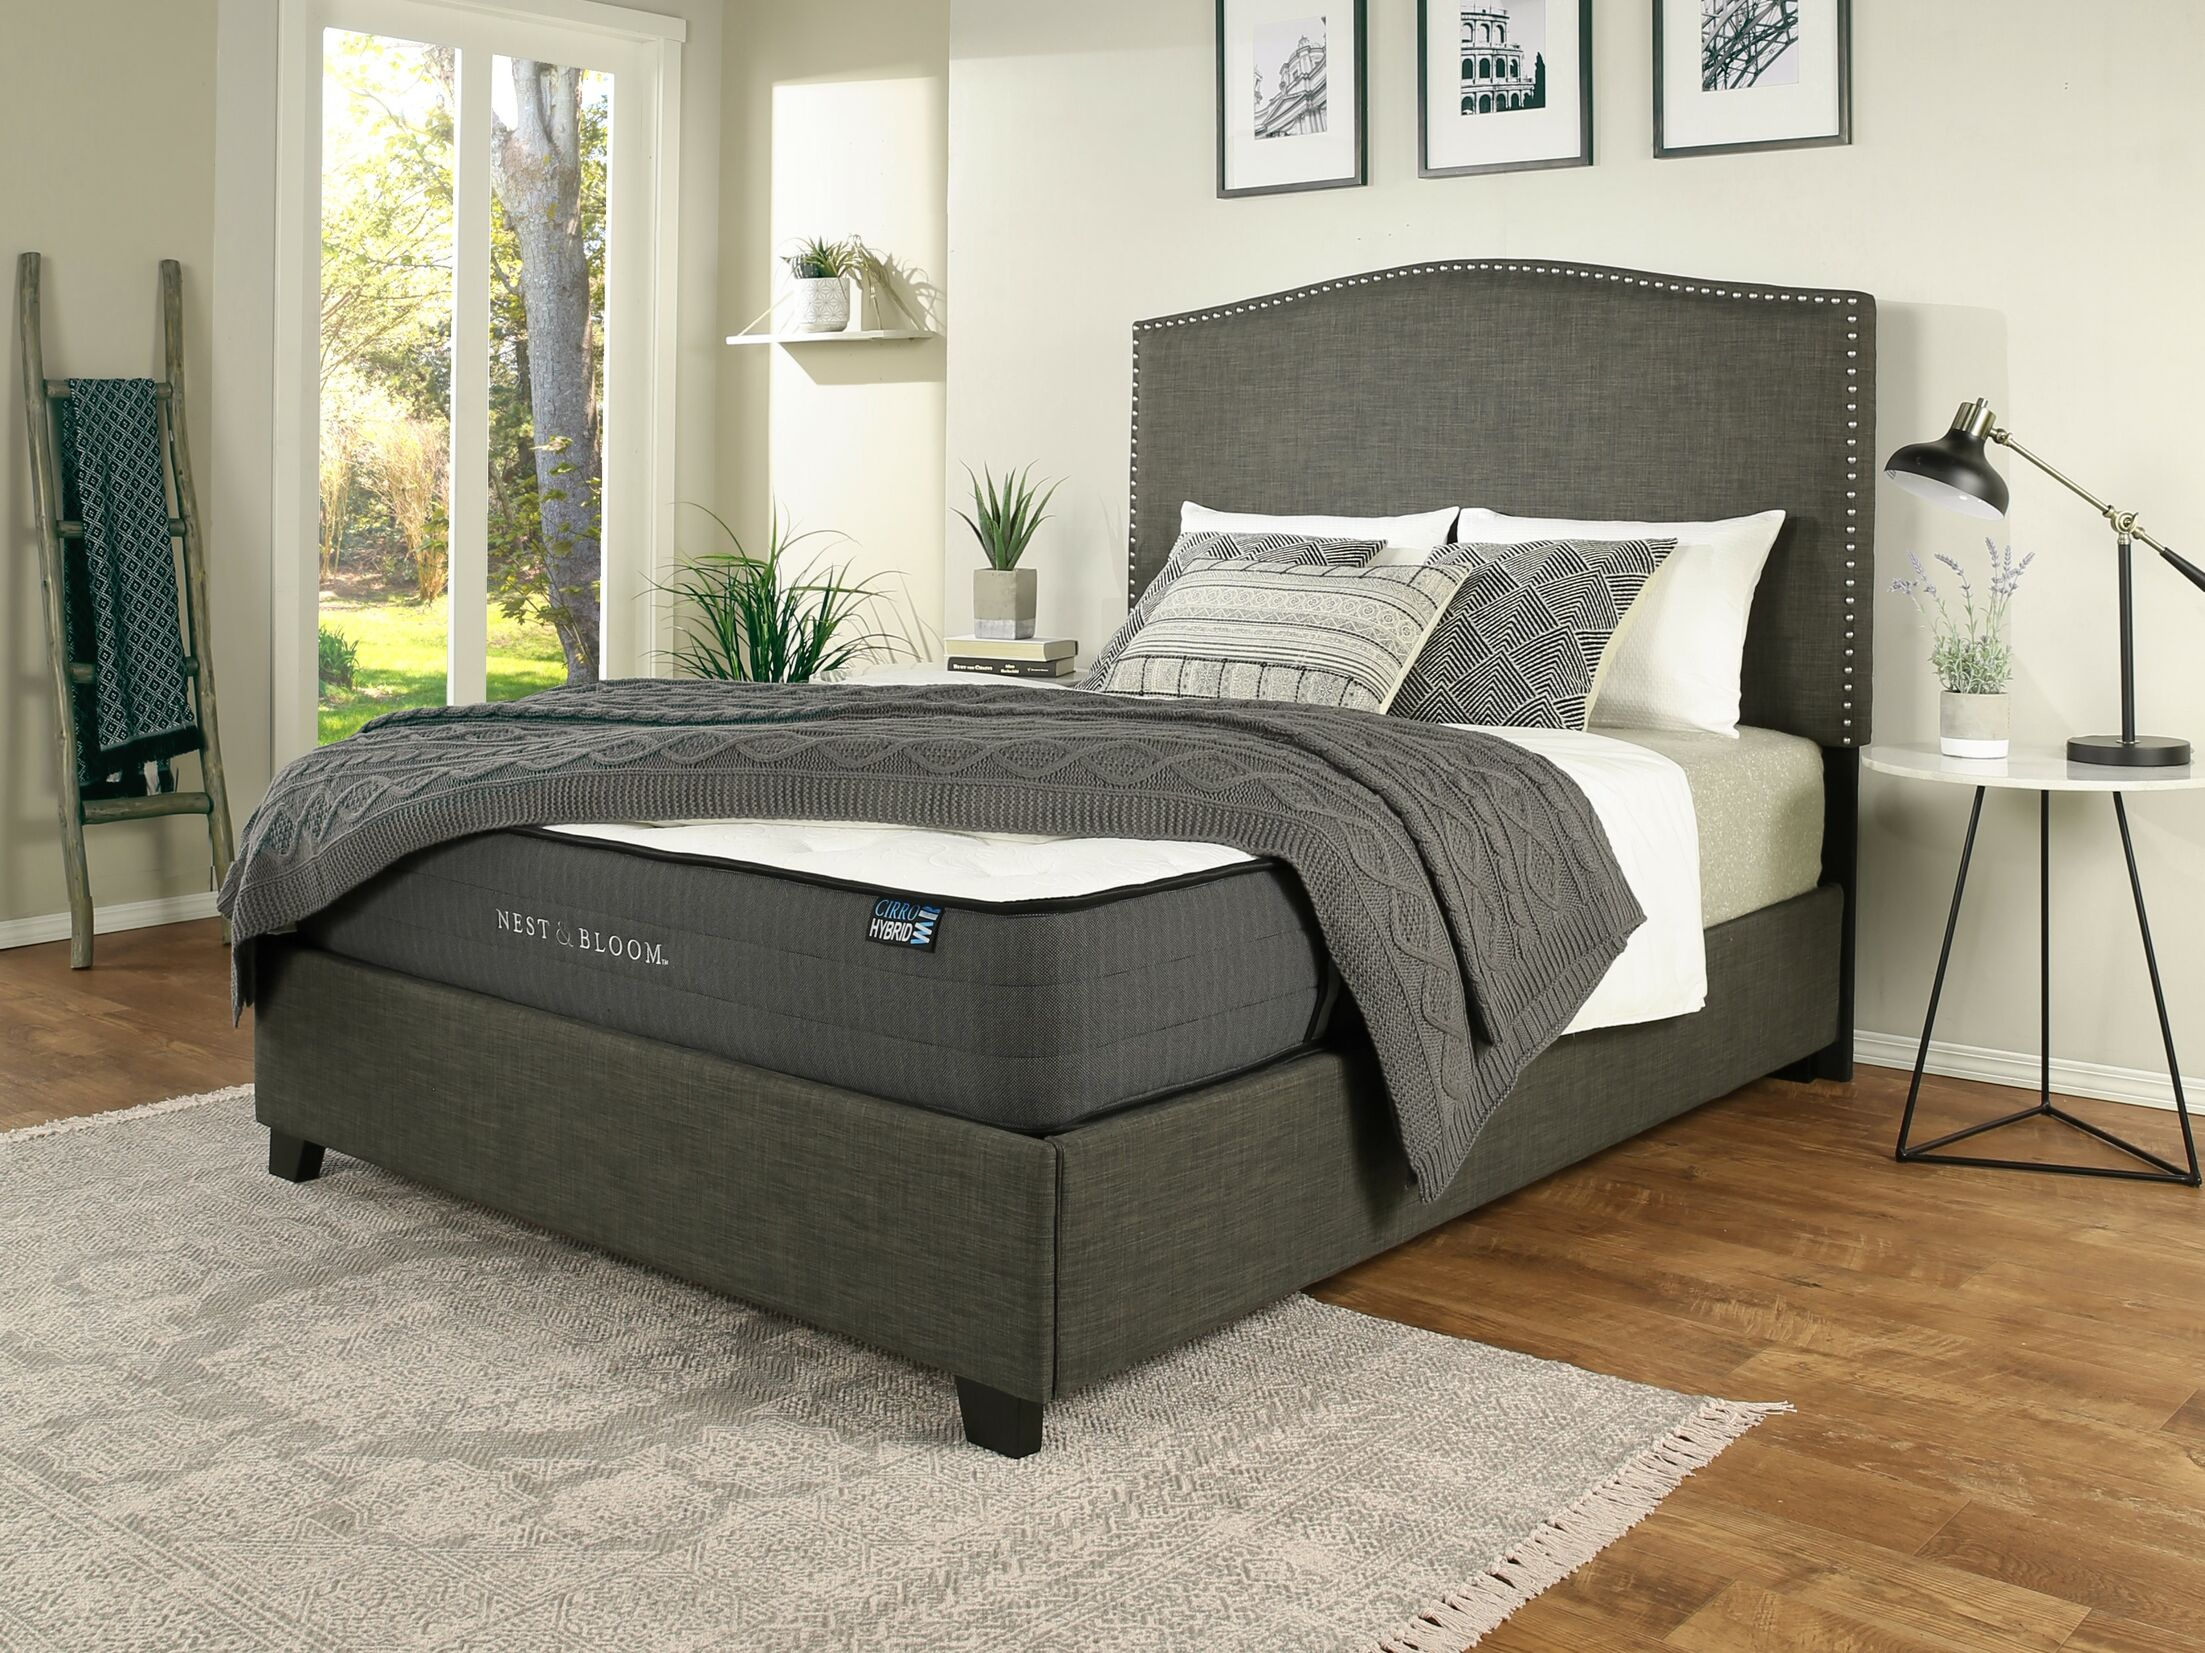 Almodovar Upholstered Panel Bed with Mattress Size: King, Color: Gray